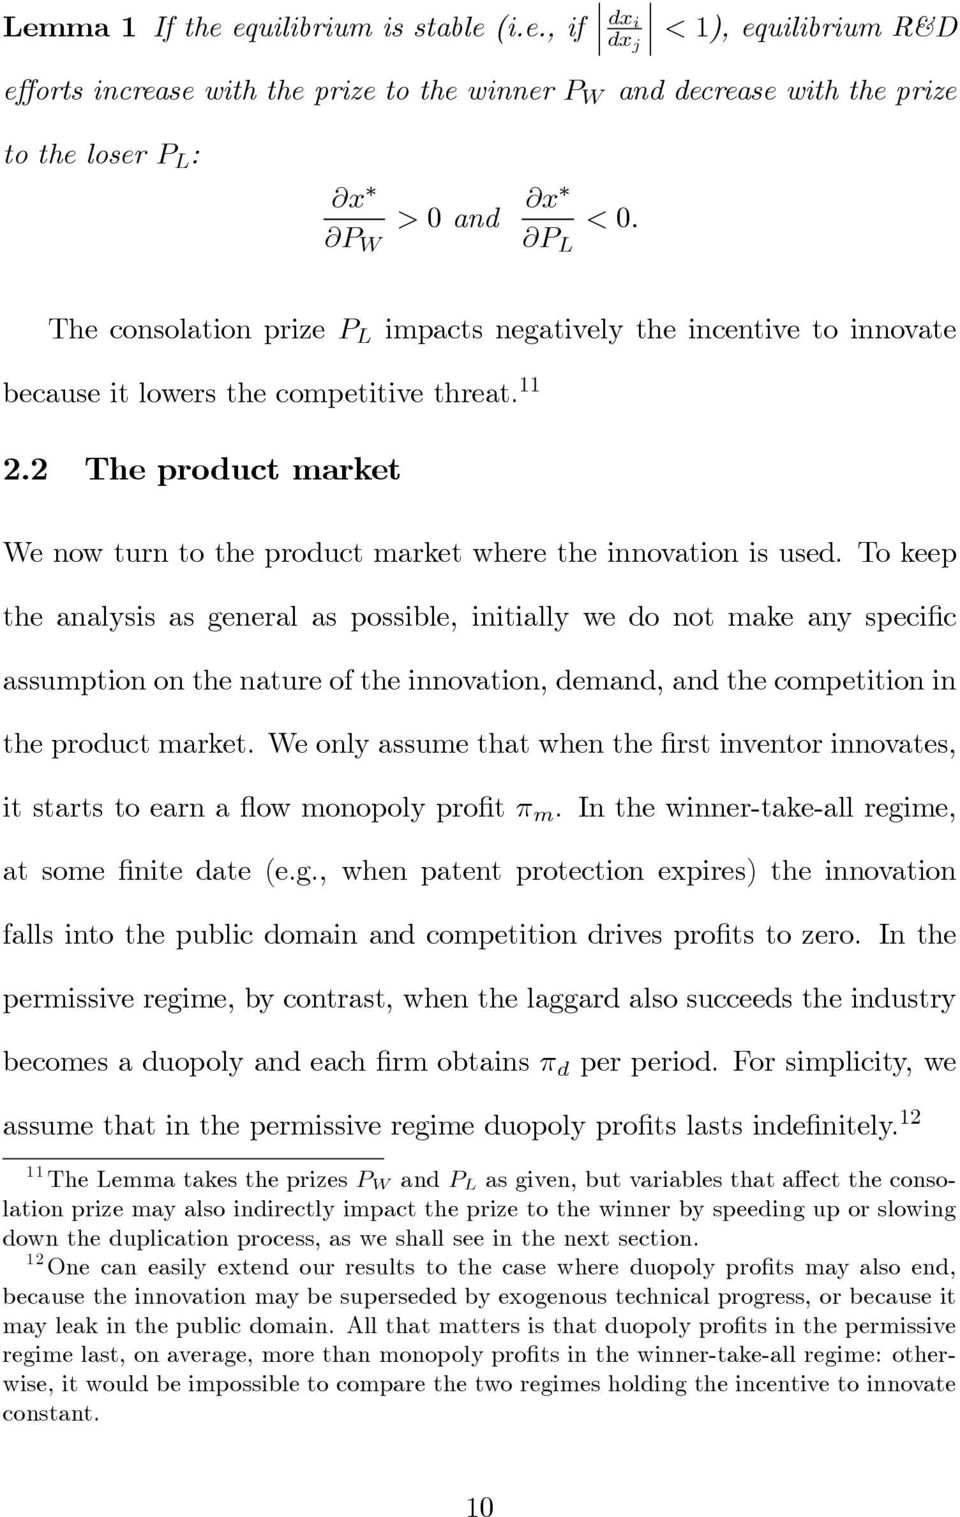 Tokeep the analysis as geneal as possible, initially we do not make any specific assumption on the natue of the innovation, demand, and the competition in the poduct maket.